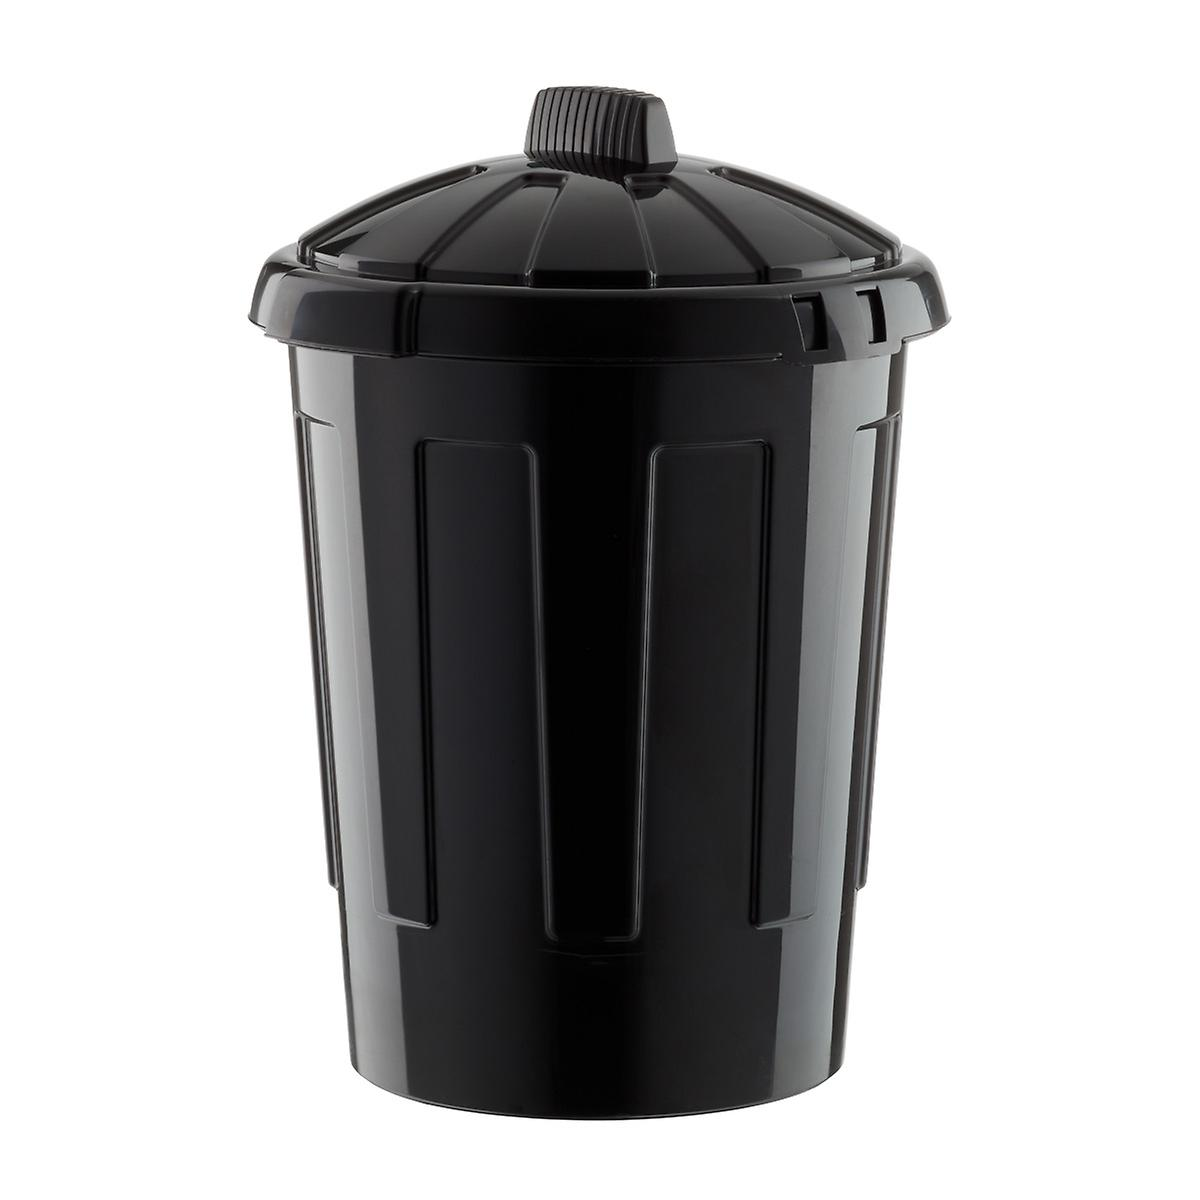 Black 21 Gal 80l Round Plastic Trash Can The Container Store